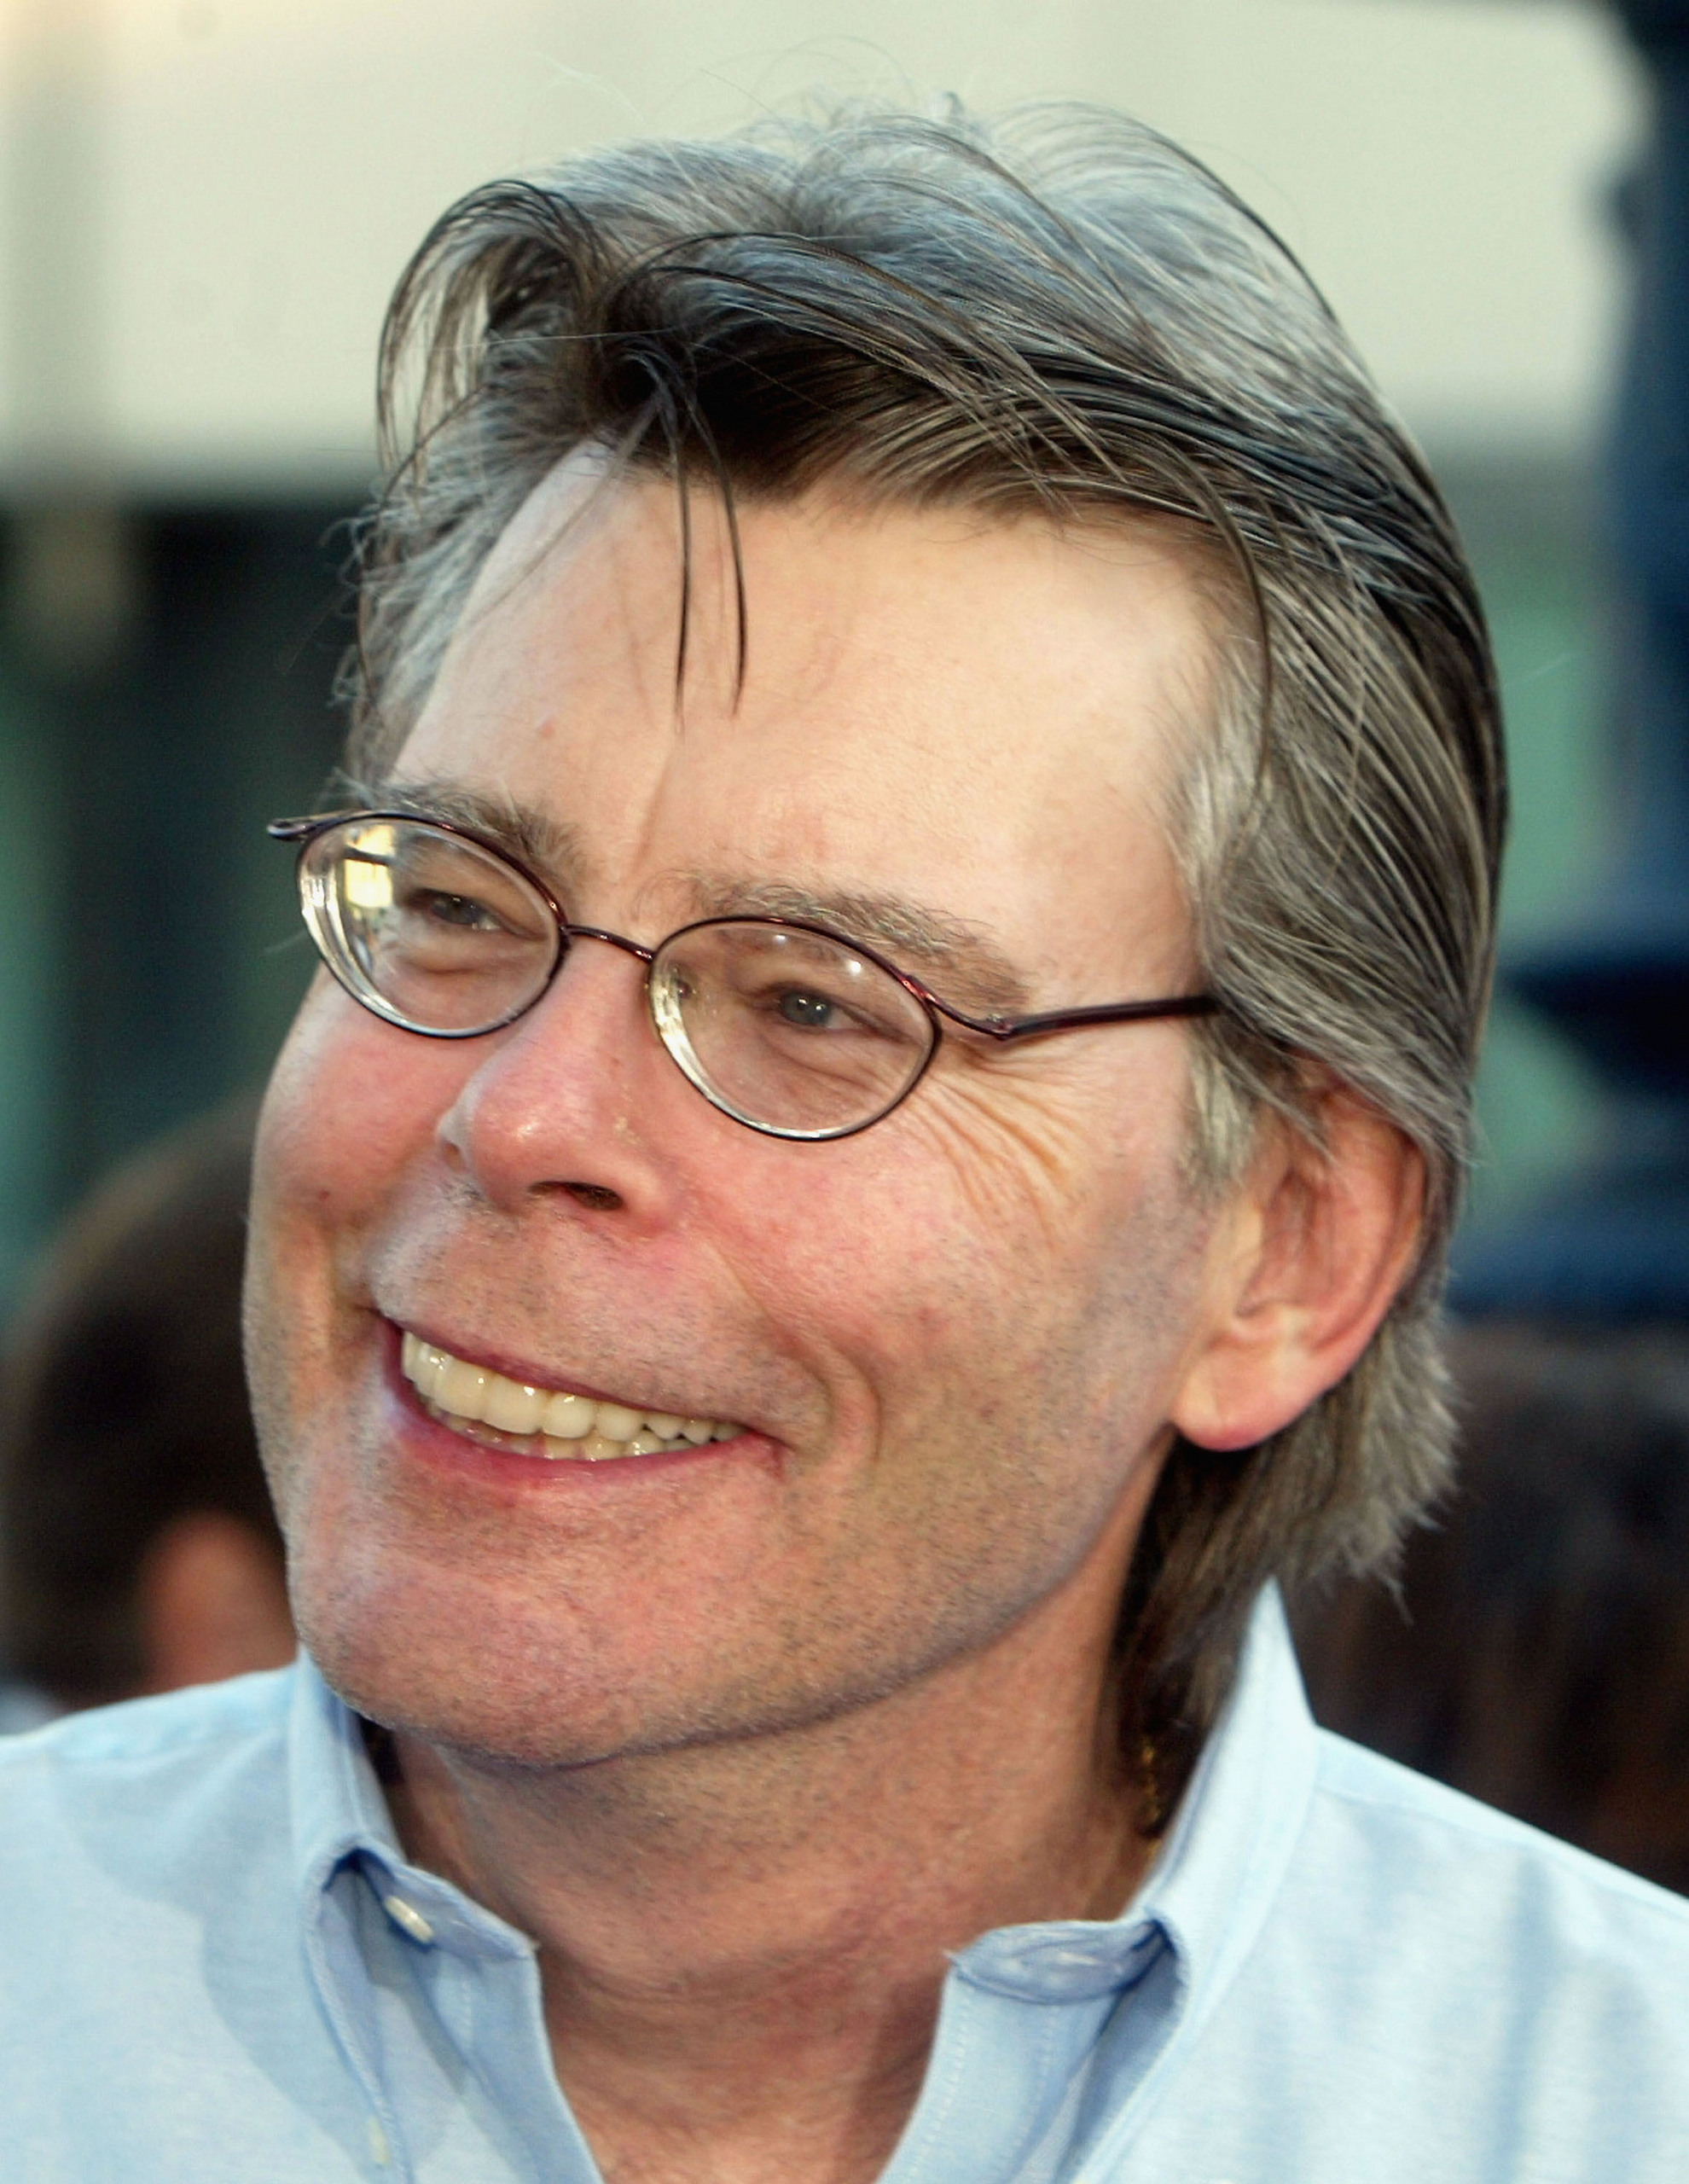 stephen king by kayla buchignani on prezi